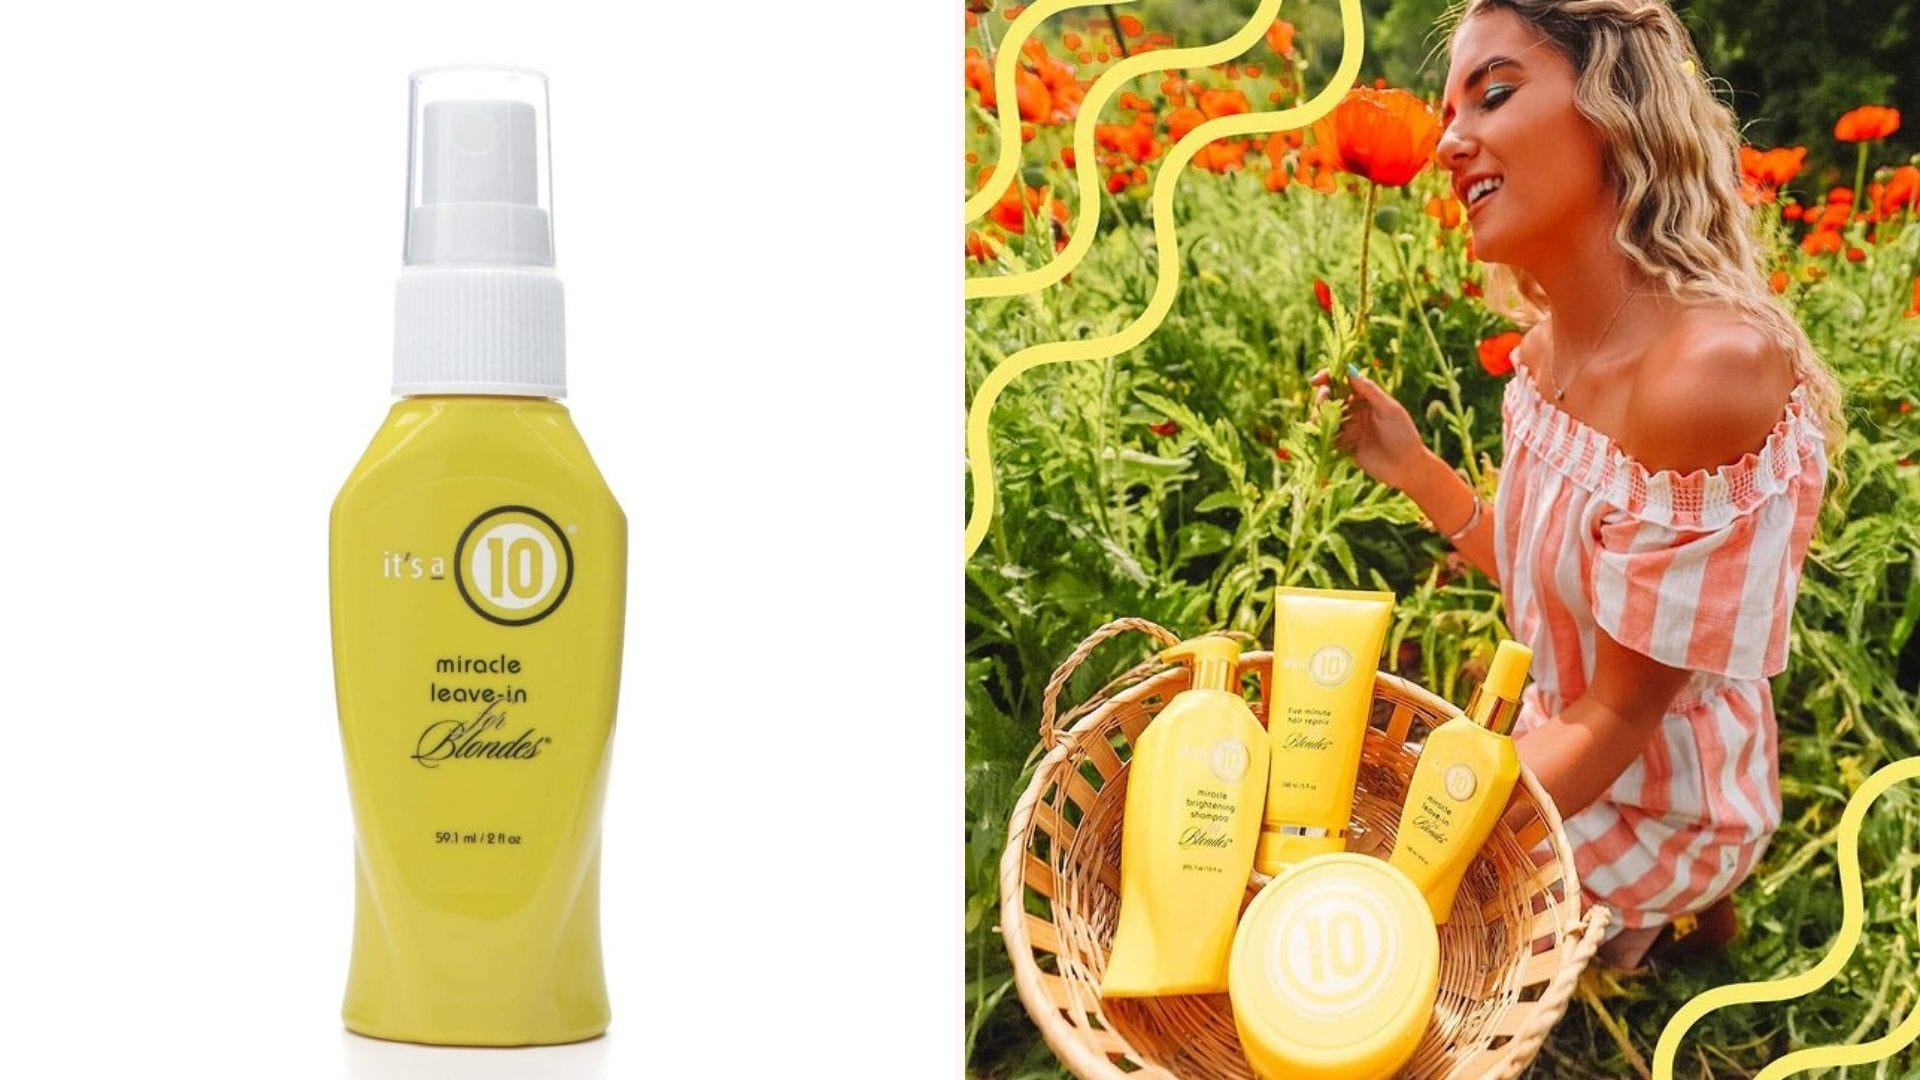 A bottle of It's a 10 Leave-In Conditioner and a blonde woman sitting in a flower garden holding a basket of four It's a 10 Haircare products.